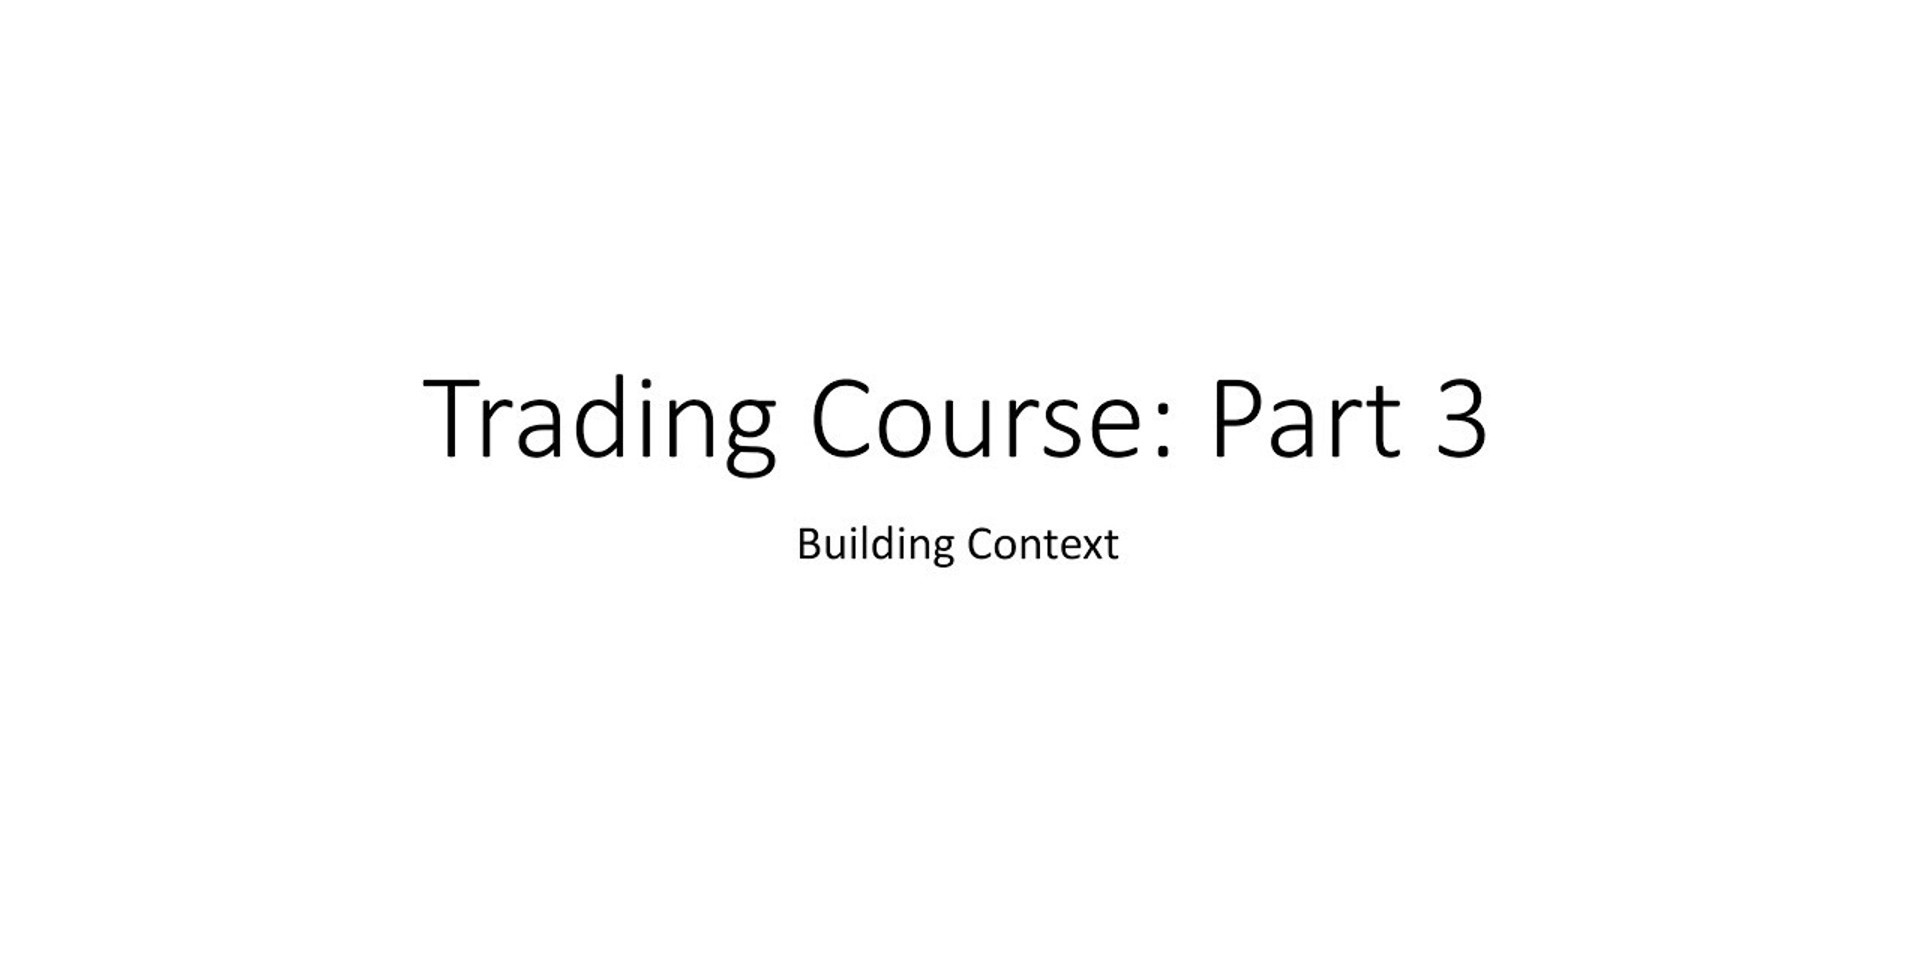 Trading Course 3